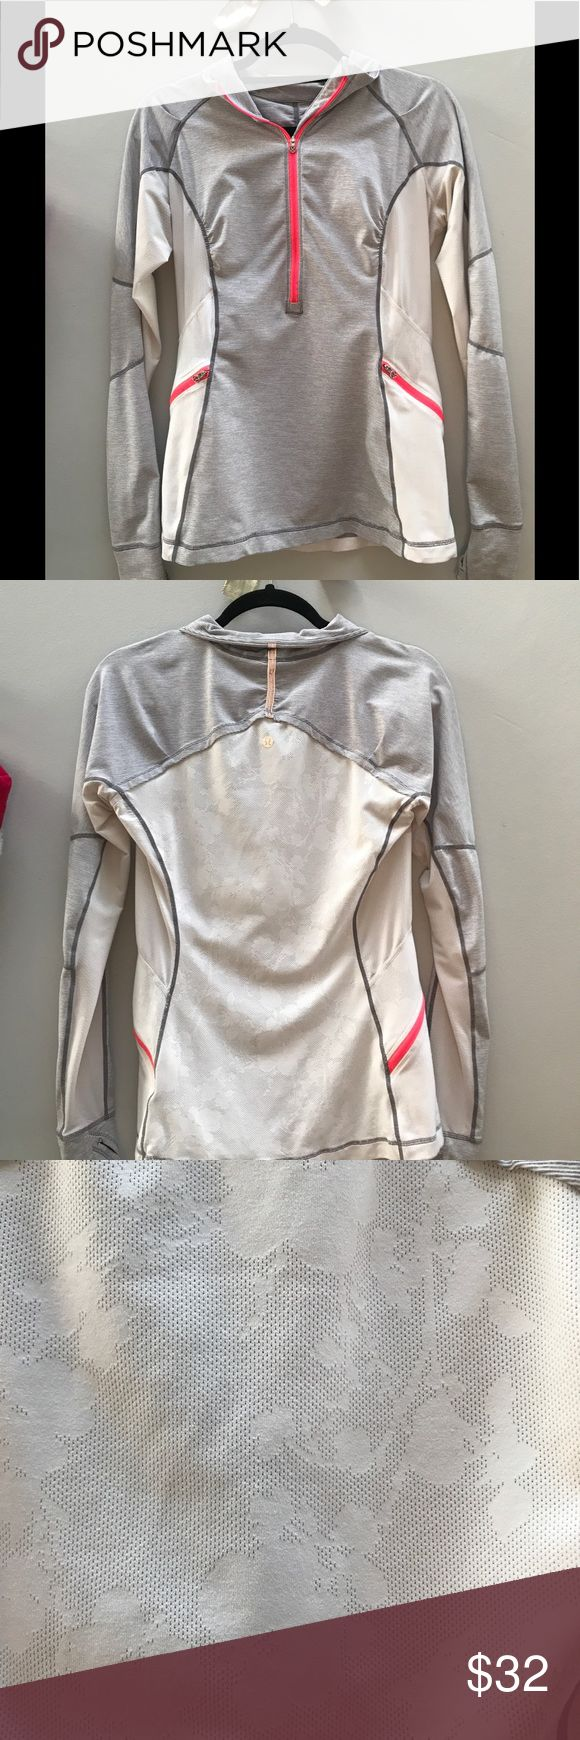 Lululemon pullover White grey and pink Size 8 White laser flower print on back Small discoloration under arms shown in pics- not noticeable when wearing lululemon athletica Tops